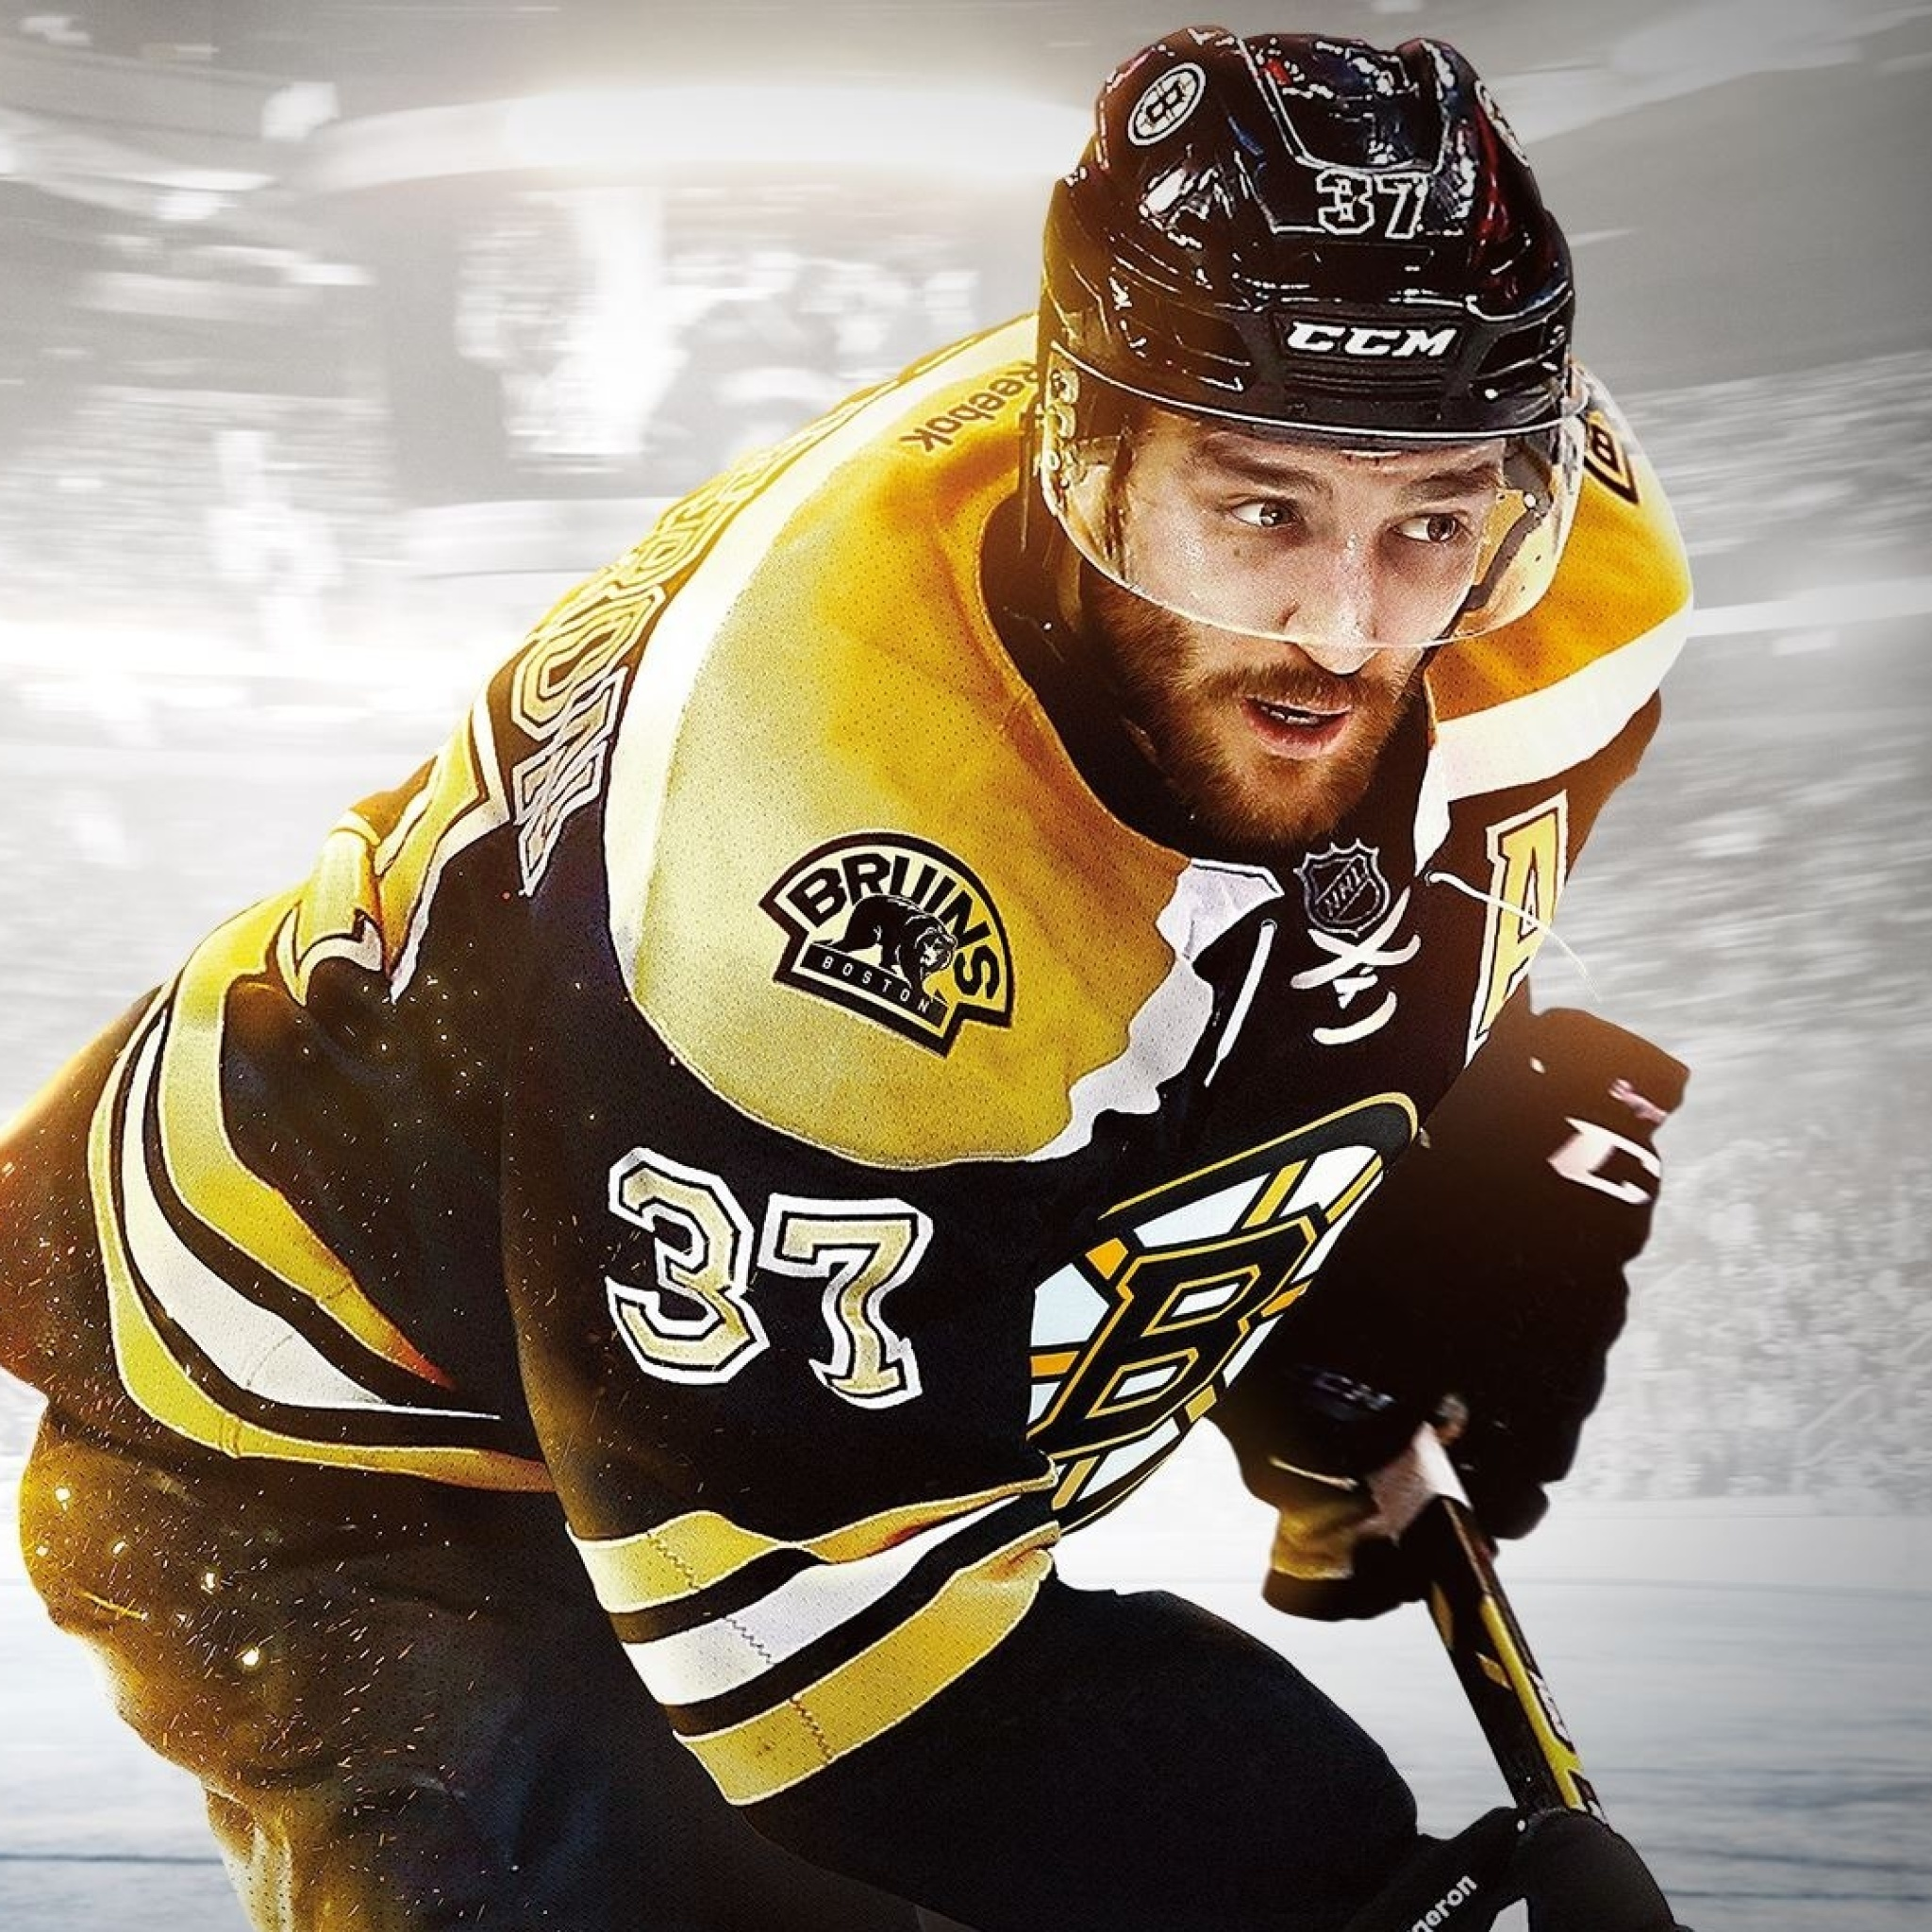 NHL Boston Bruins screenshot #1 2048x2048